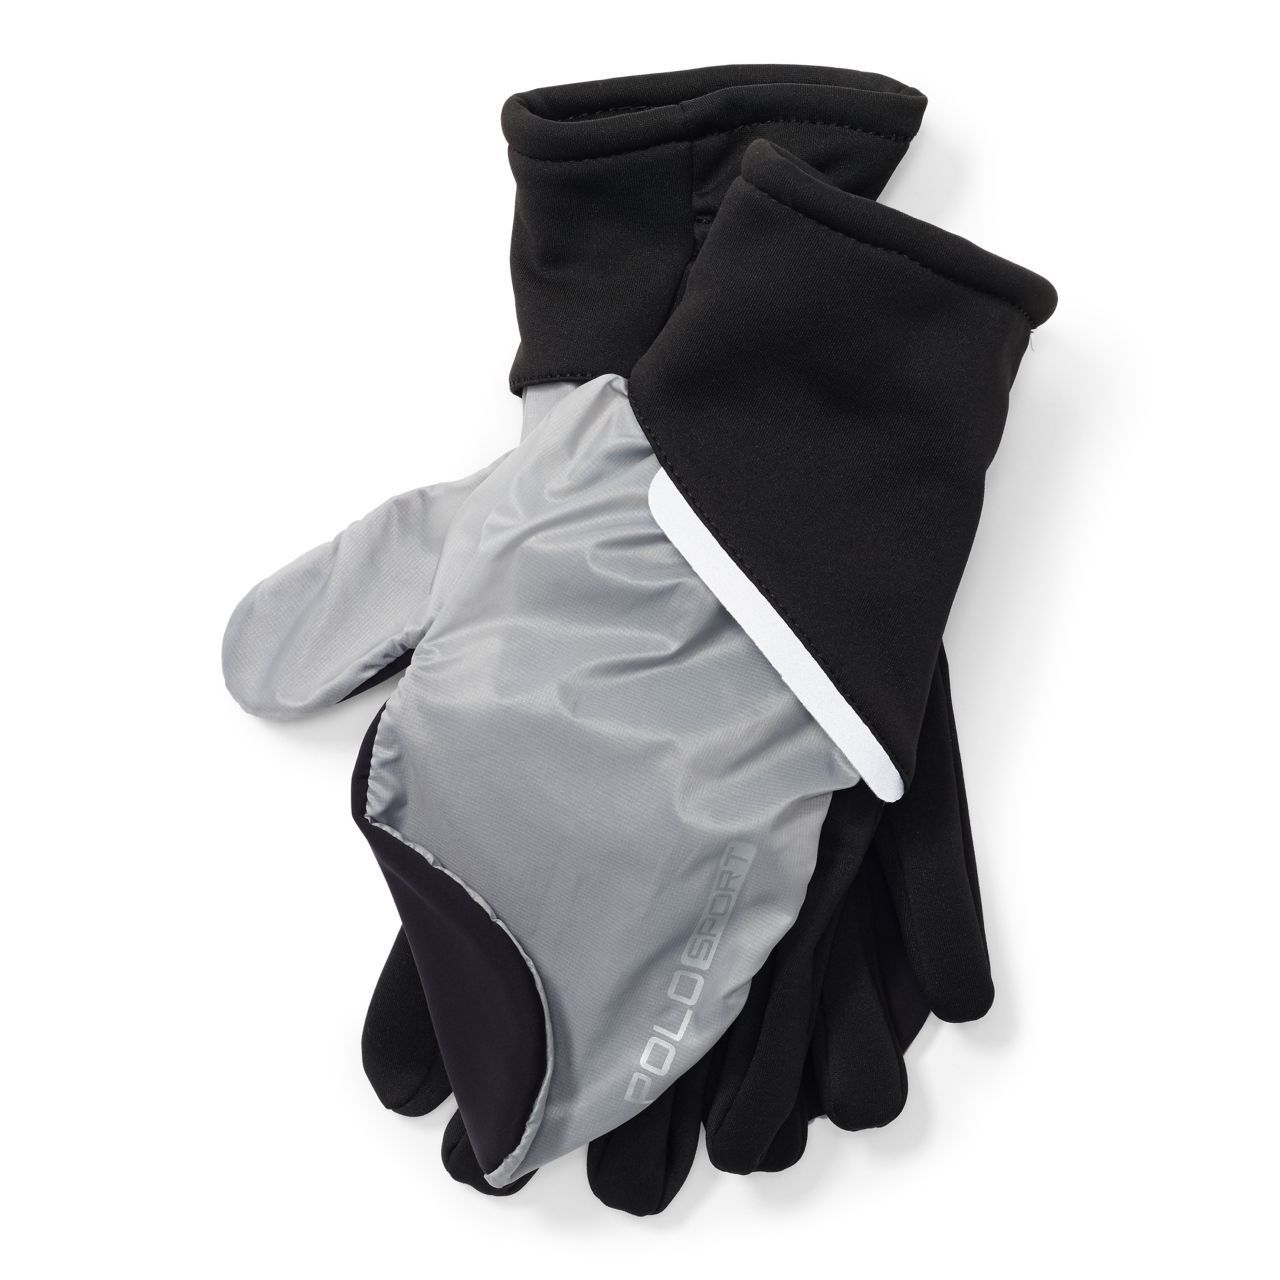 ◎送料込み◎Mitten-Top Athletic Gloves